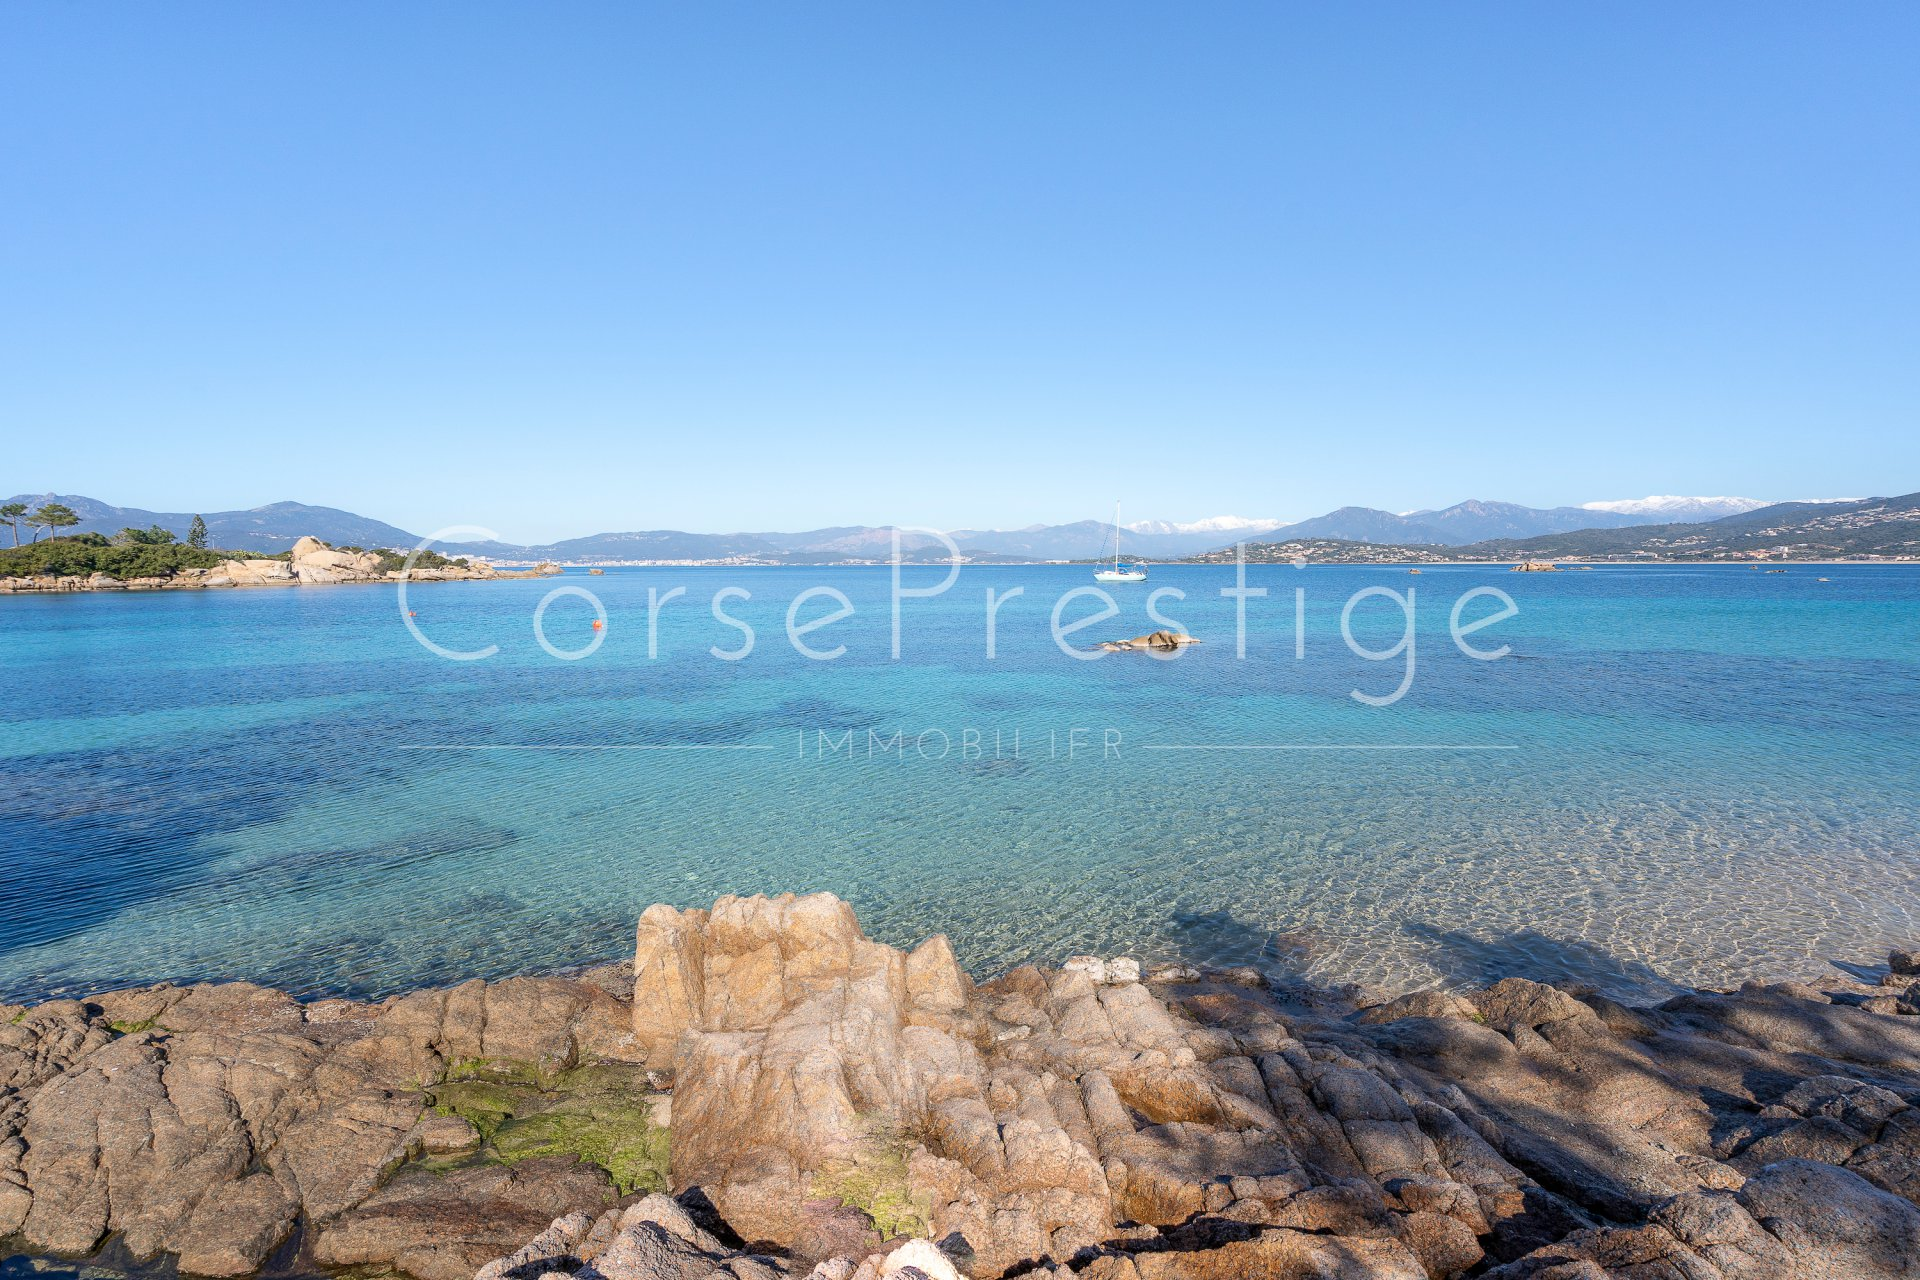 ajaccio gulf - peninsula of isolella - property for sale image1